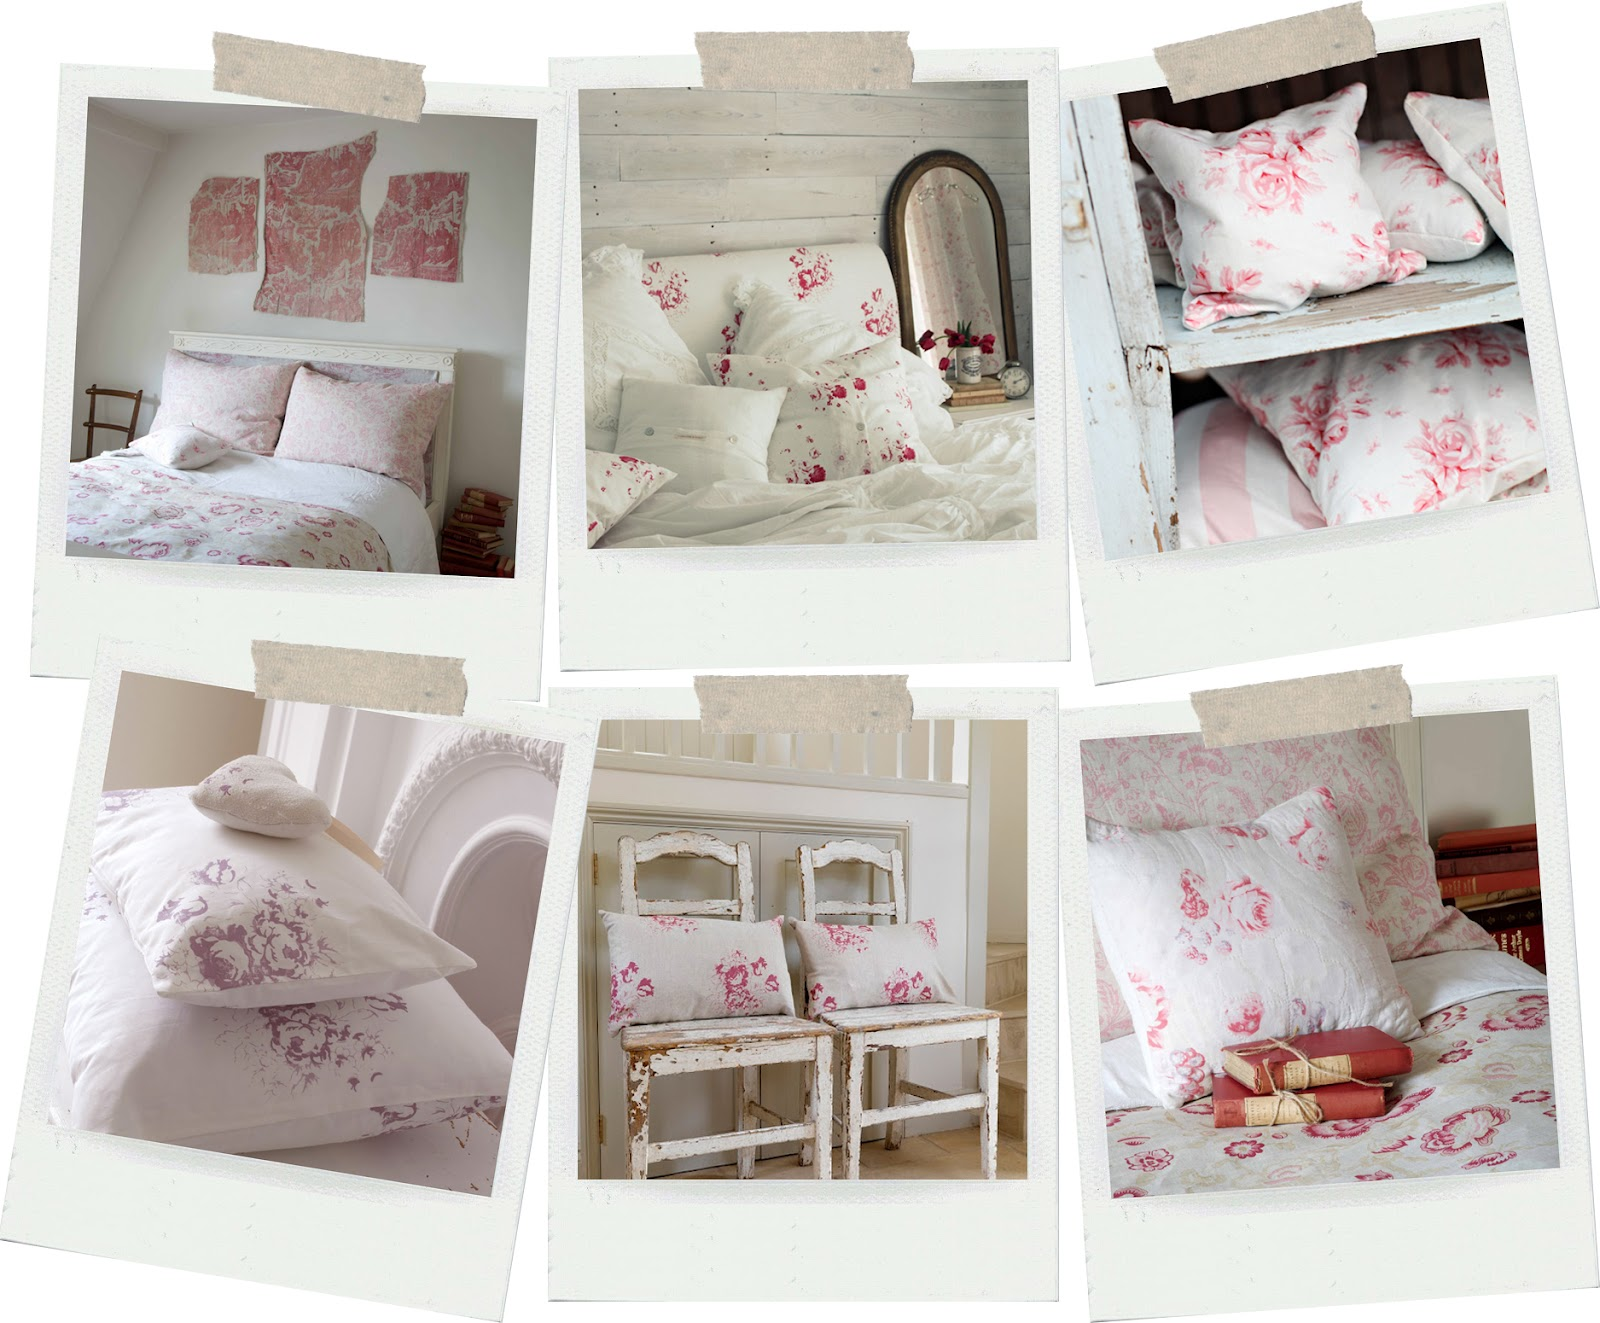 Dreamy Whites 2. The Paper Mulberry 3. Dreamy Whites 4. Dreamy ...